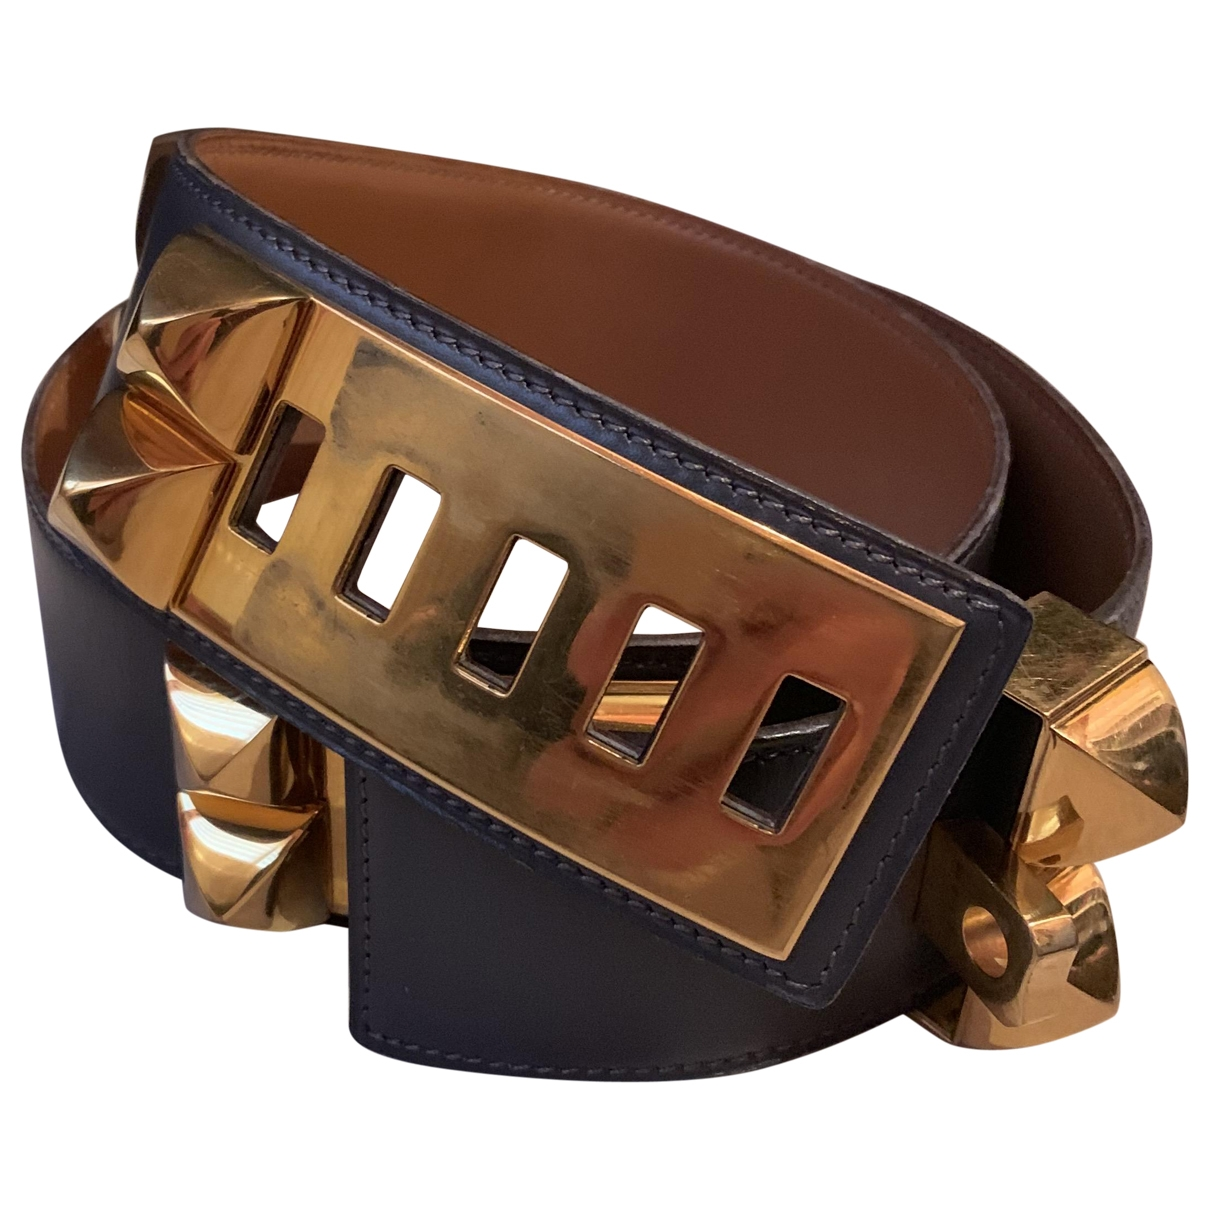 Hermès Collier de chien Anthracite Leather belt for Women 75 cm